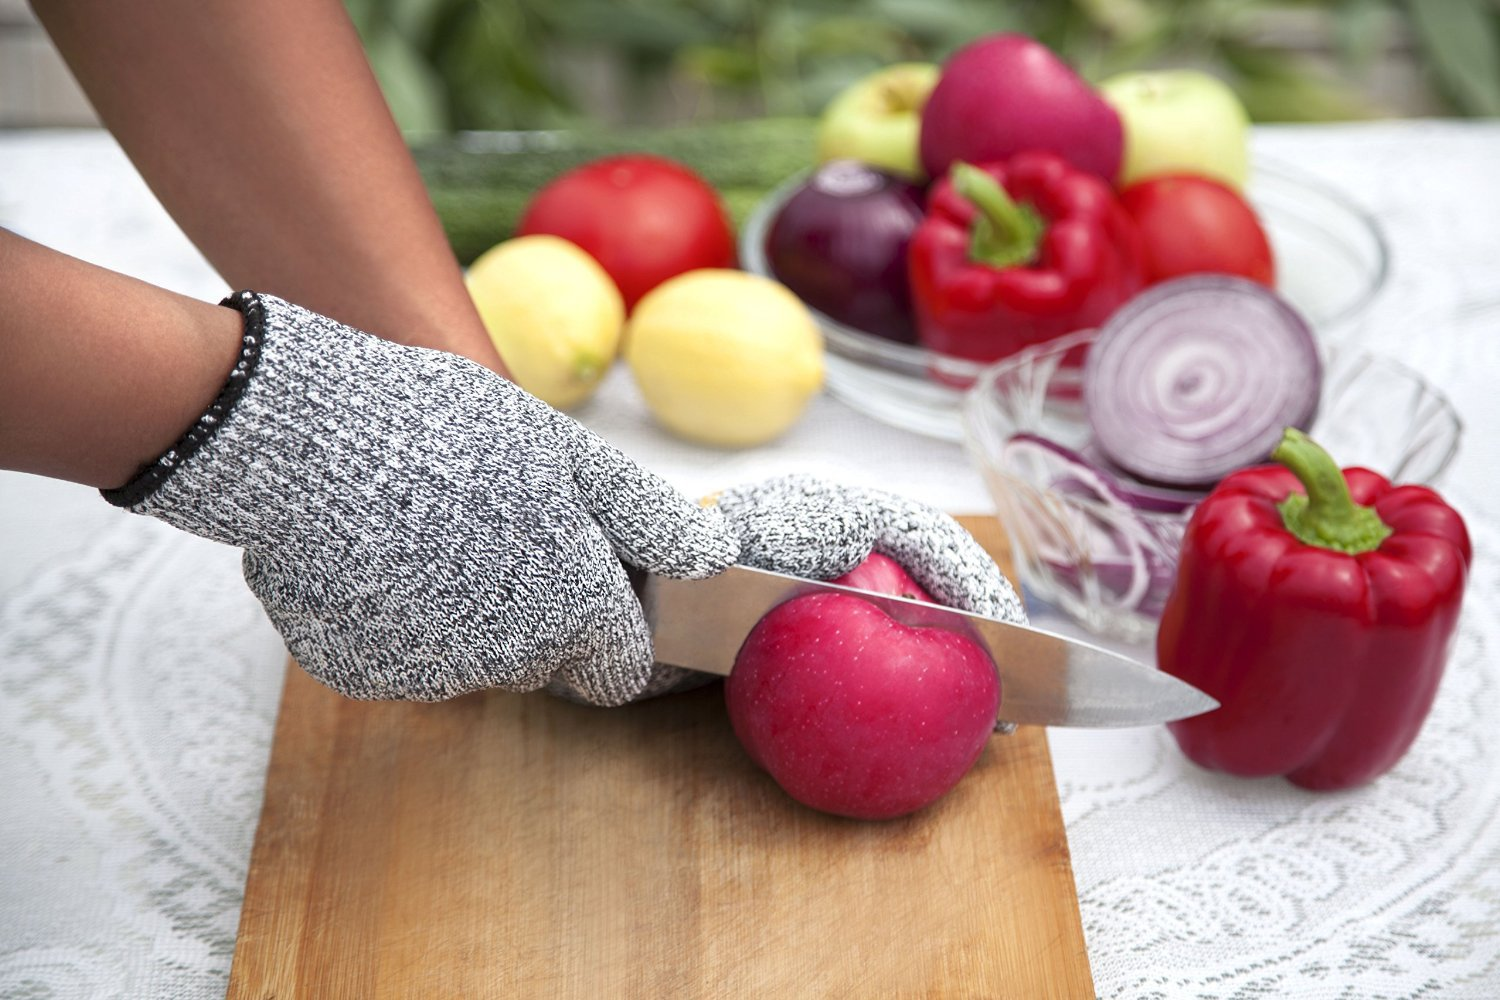 YiZYiF Cut Resistant Gloves Best Food Grade Kitchen Level 5 Cut Protection Knit Safety for Cooking, Working, Wood carving by YiZYiF (Image #4)